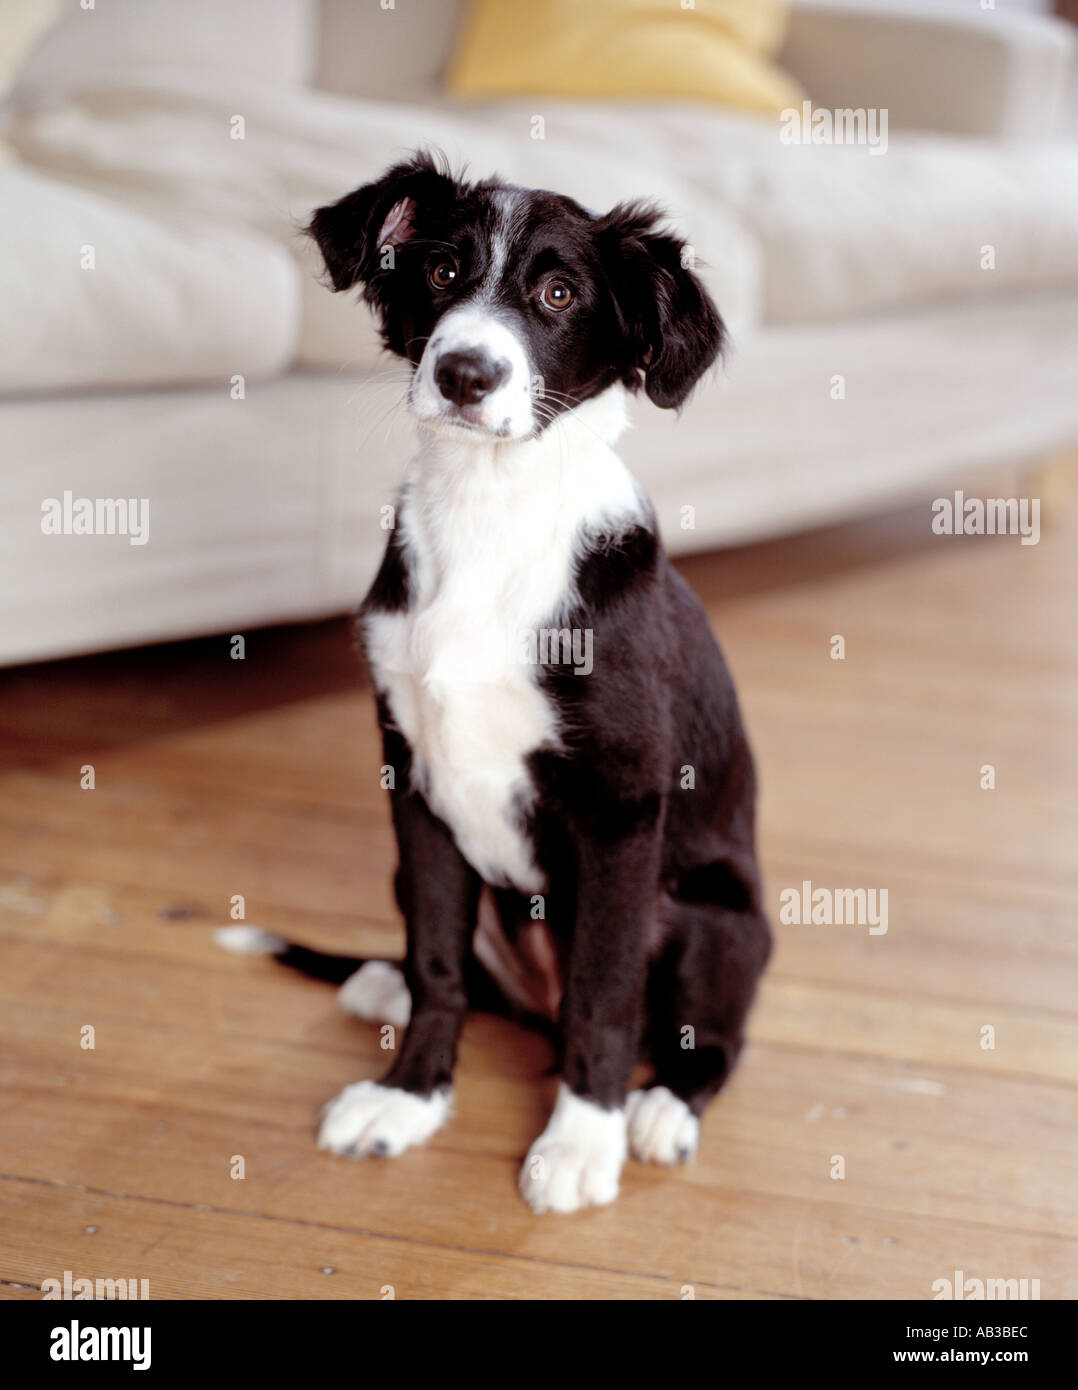 collie sheepdog puppy sitting in living room - Stock Image